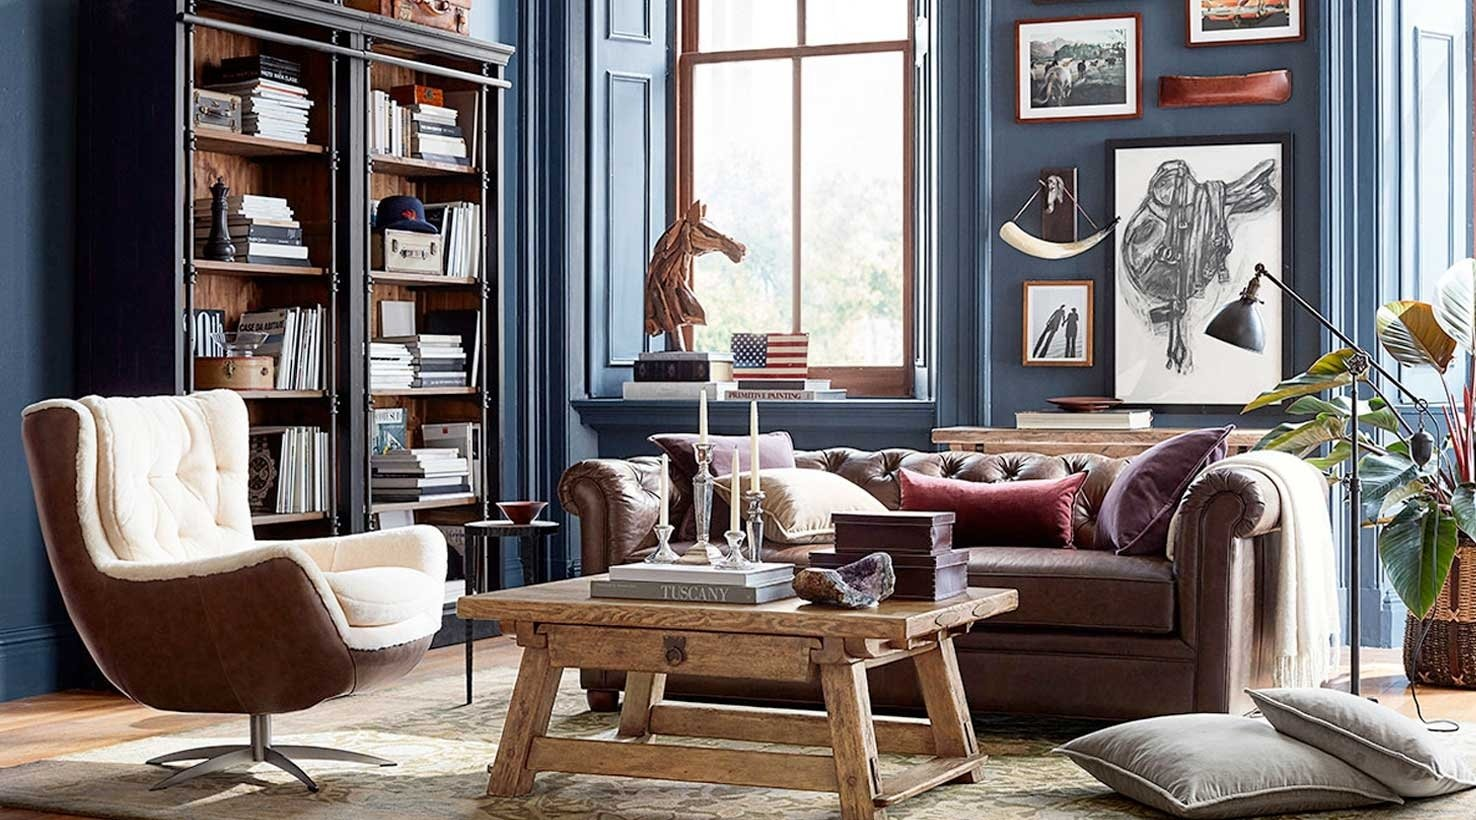 10 Most Popular Living Room Paint Colors Ideas living room paint color ideas inspiration gallery sherwin williams 20 2021